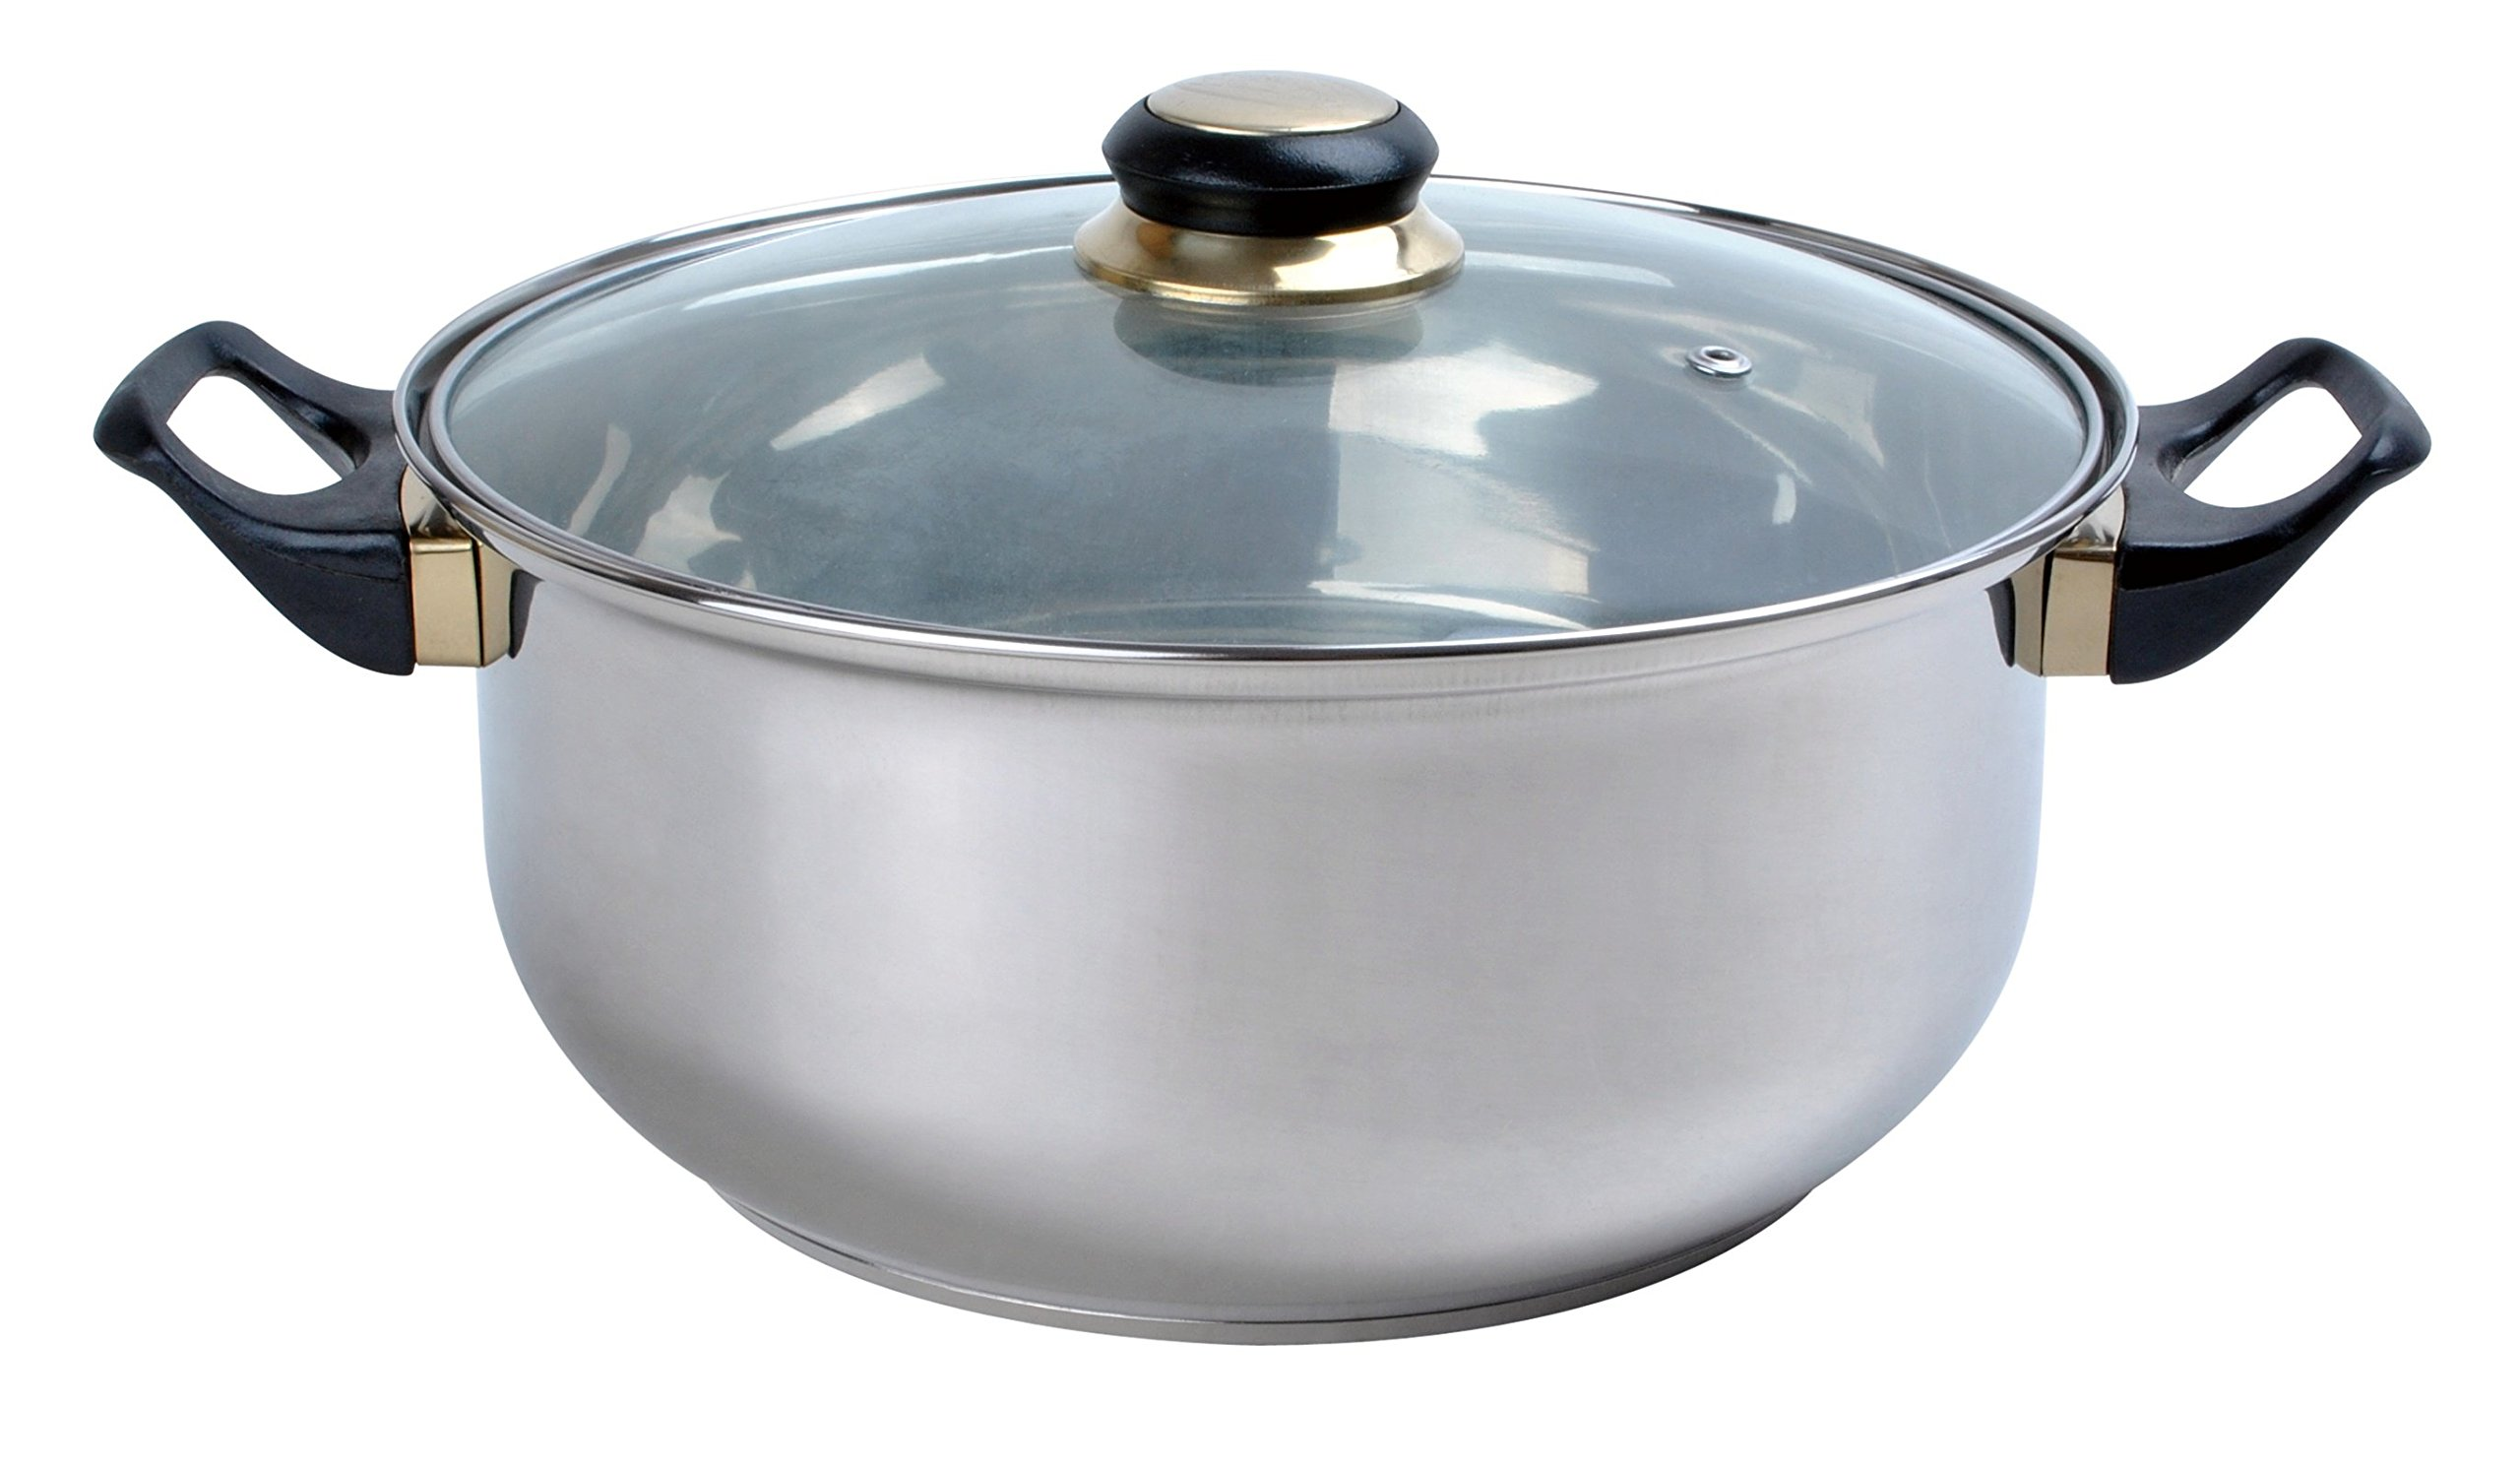 Aramco Alpine Gourmet Dutch Oven, 2 quart, Stainless Steel by Aramco (Image #1)